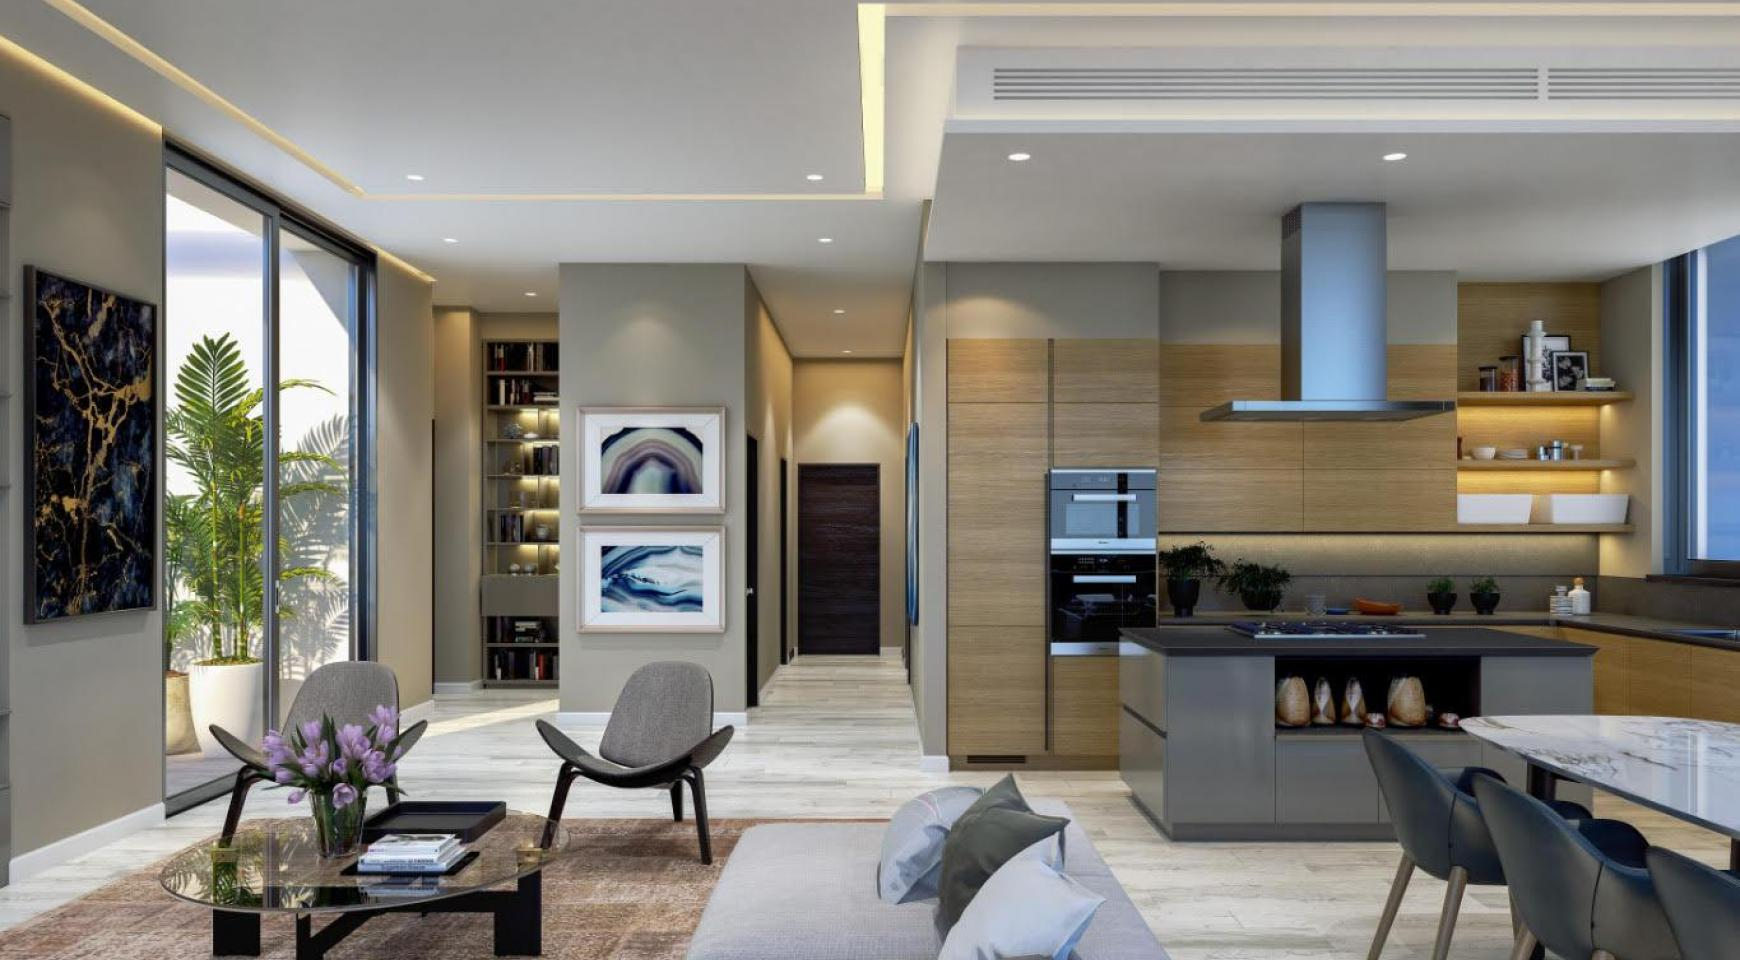 3 Bedroom Apartment with Sea Views in a Luxury Complex - 8